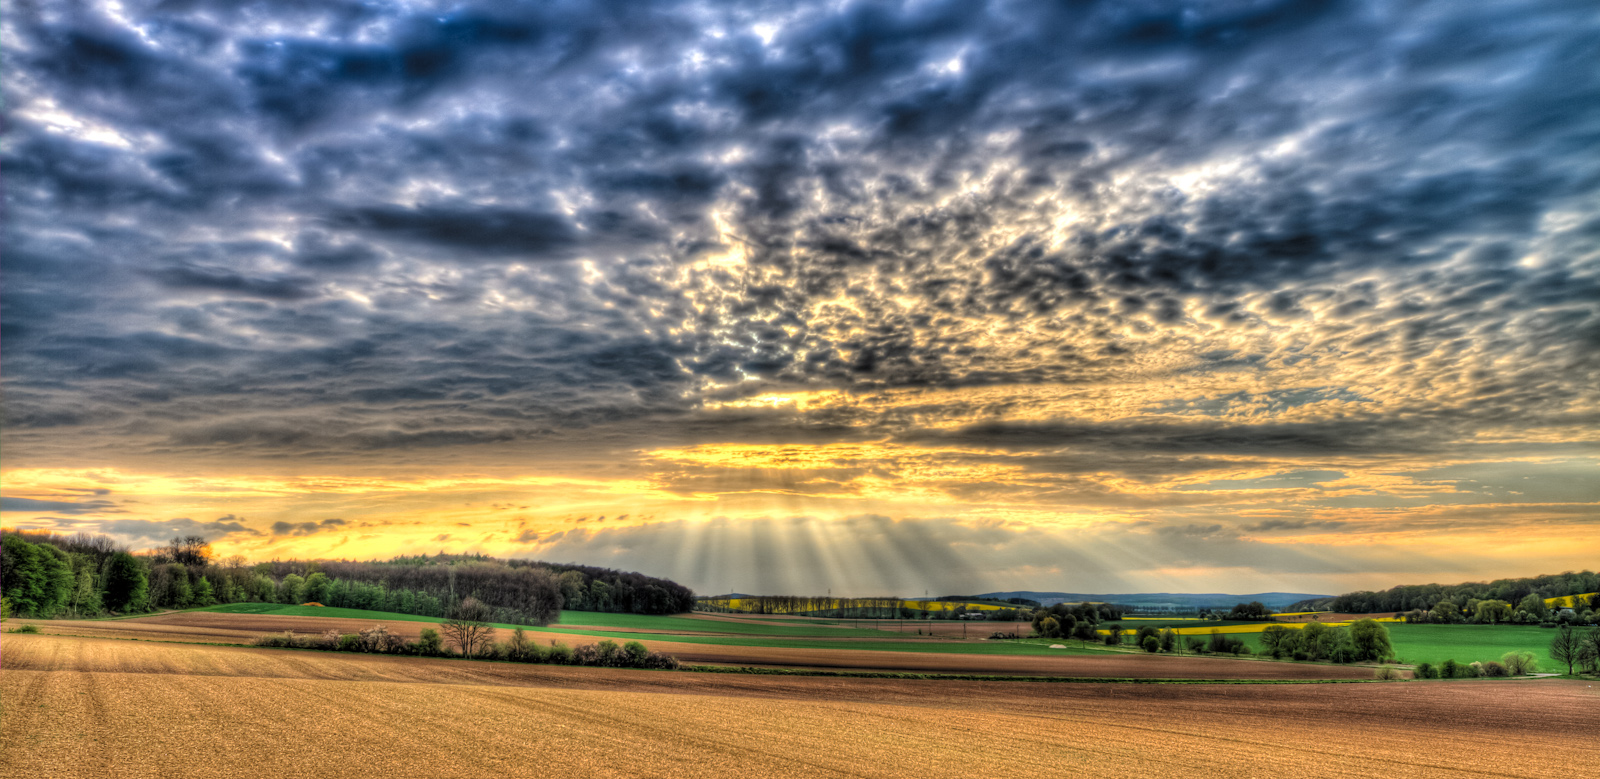 nearly sunset (hdr)